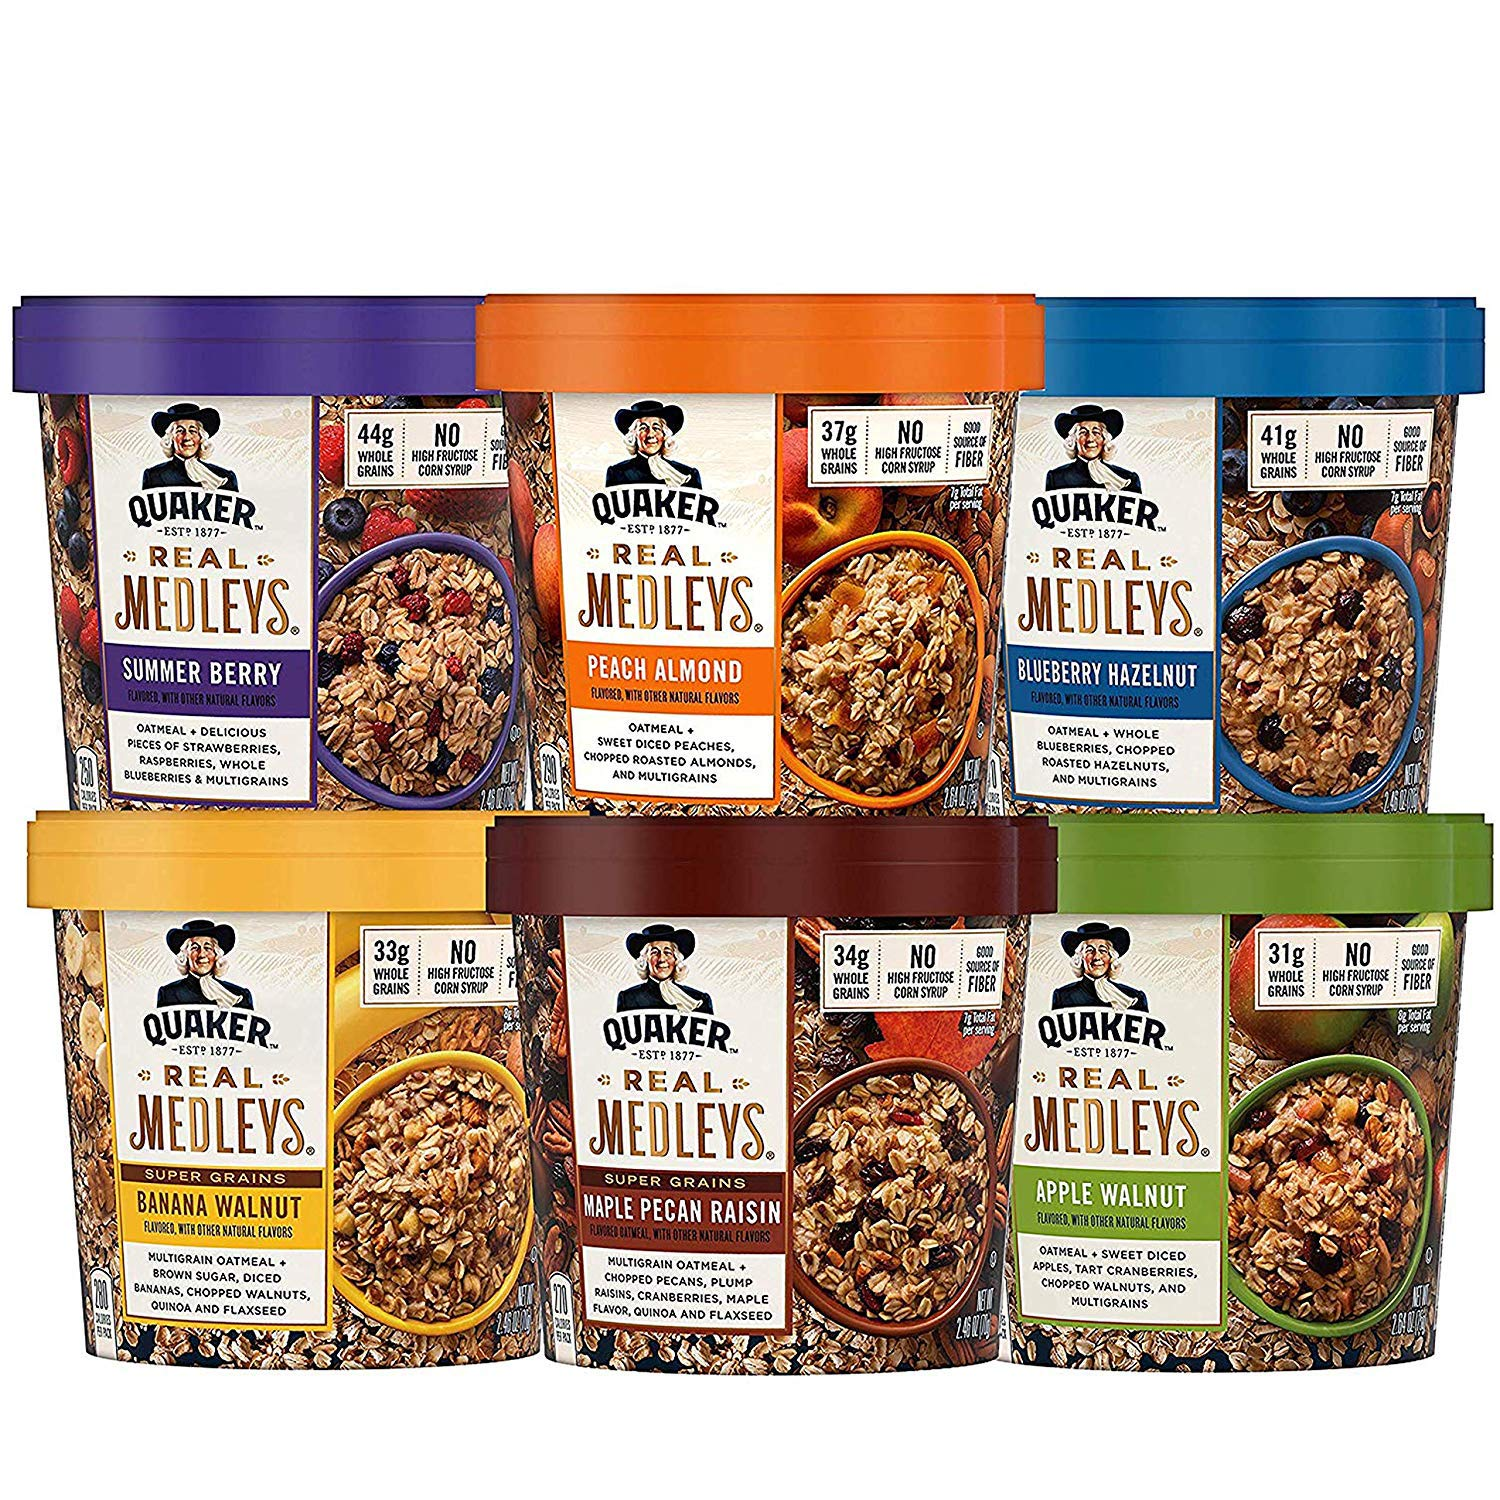 Quaker Real Medleys Oatmeal+, 6 Flavor Variety Pack, Oatmeal Cups, 12 Count